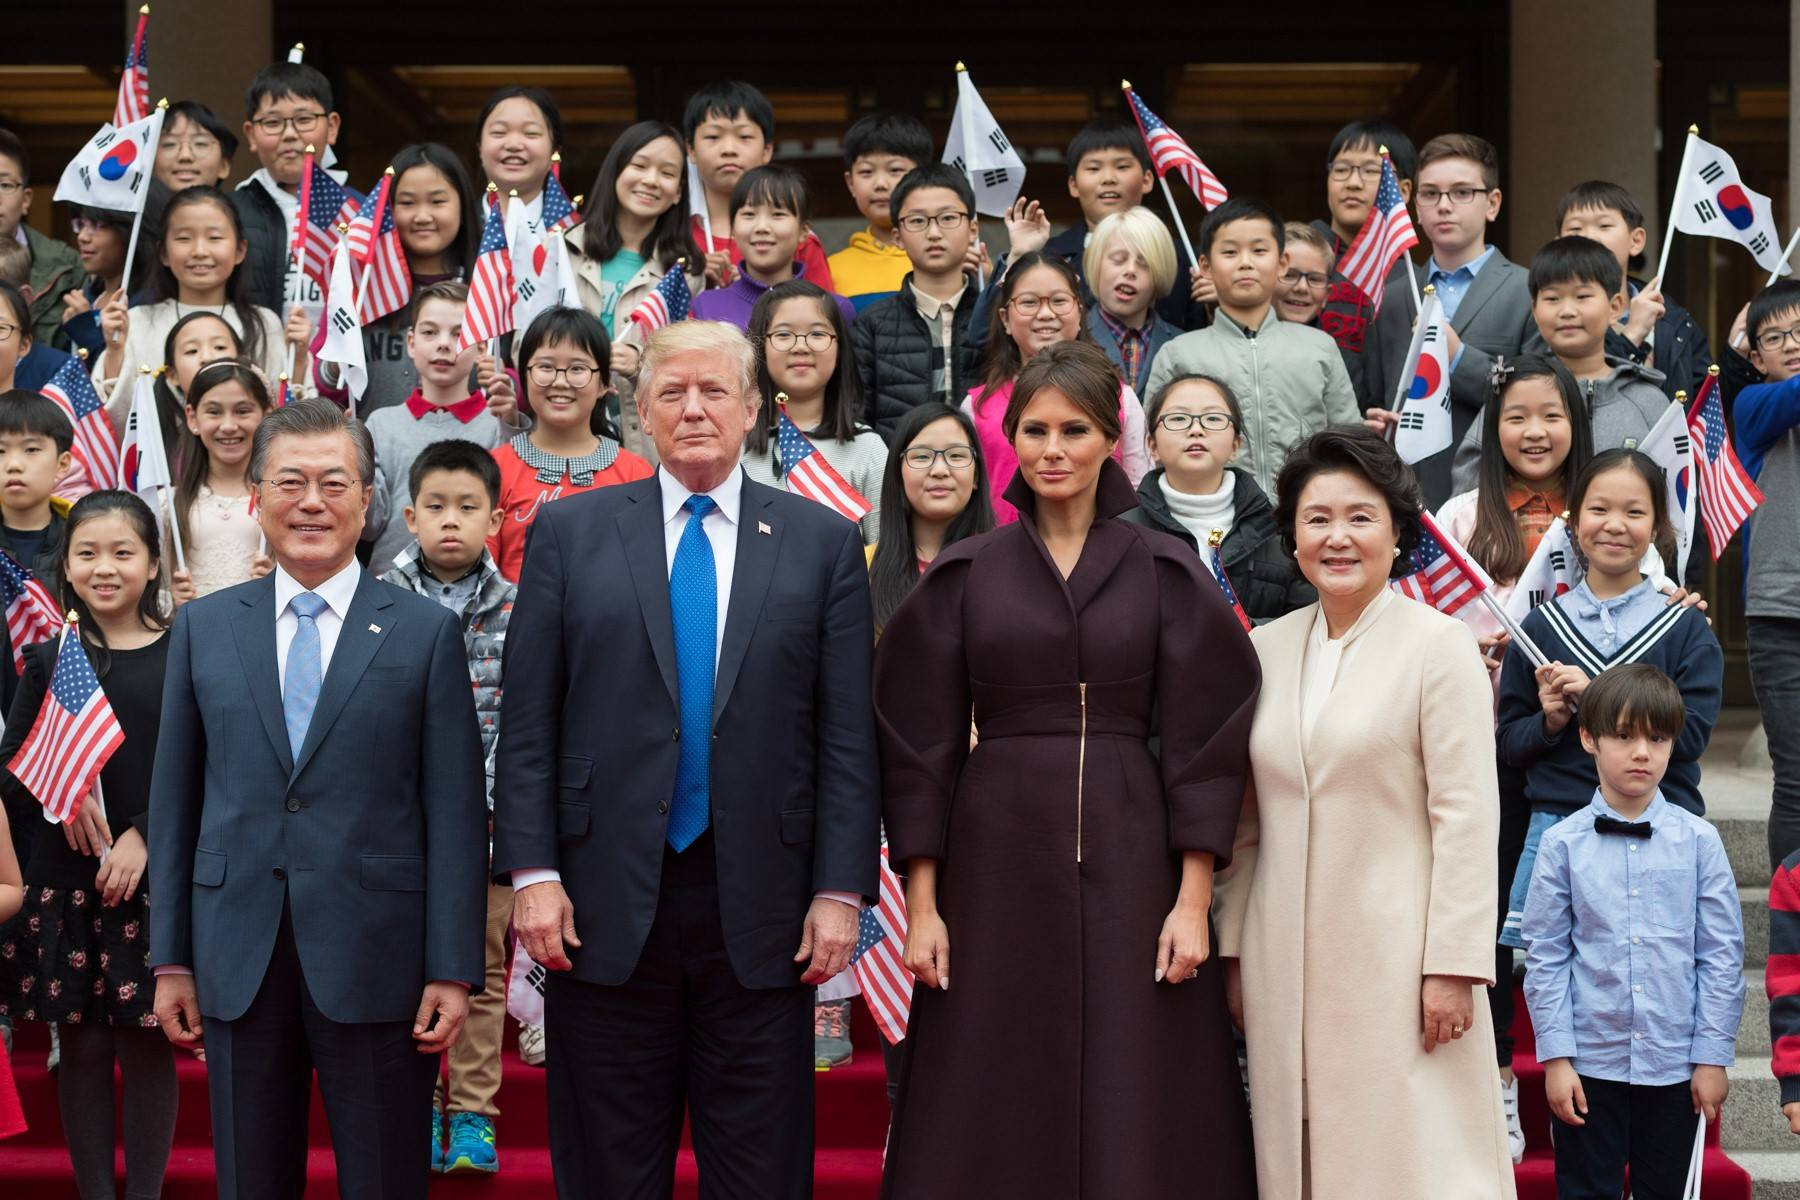 #POTUSinAsia in Photos: https://t.co/2EdlNGZPYw https://t.co/kjWSkFXebs